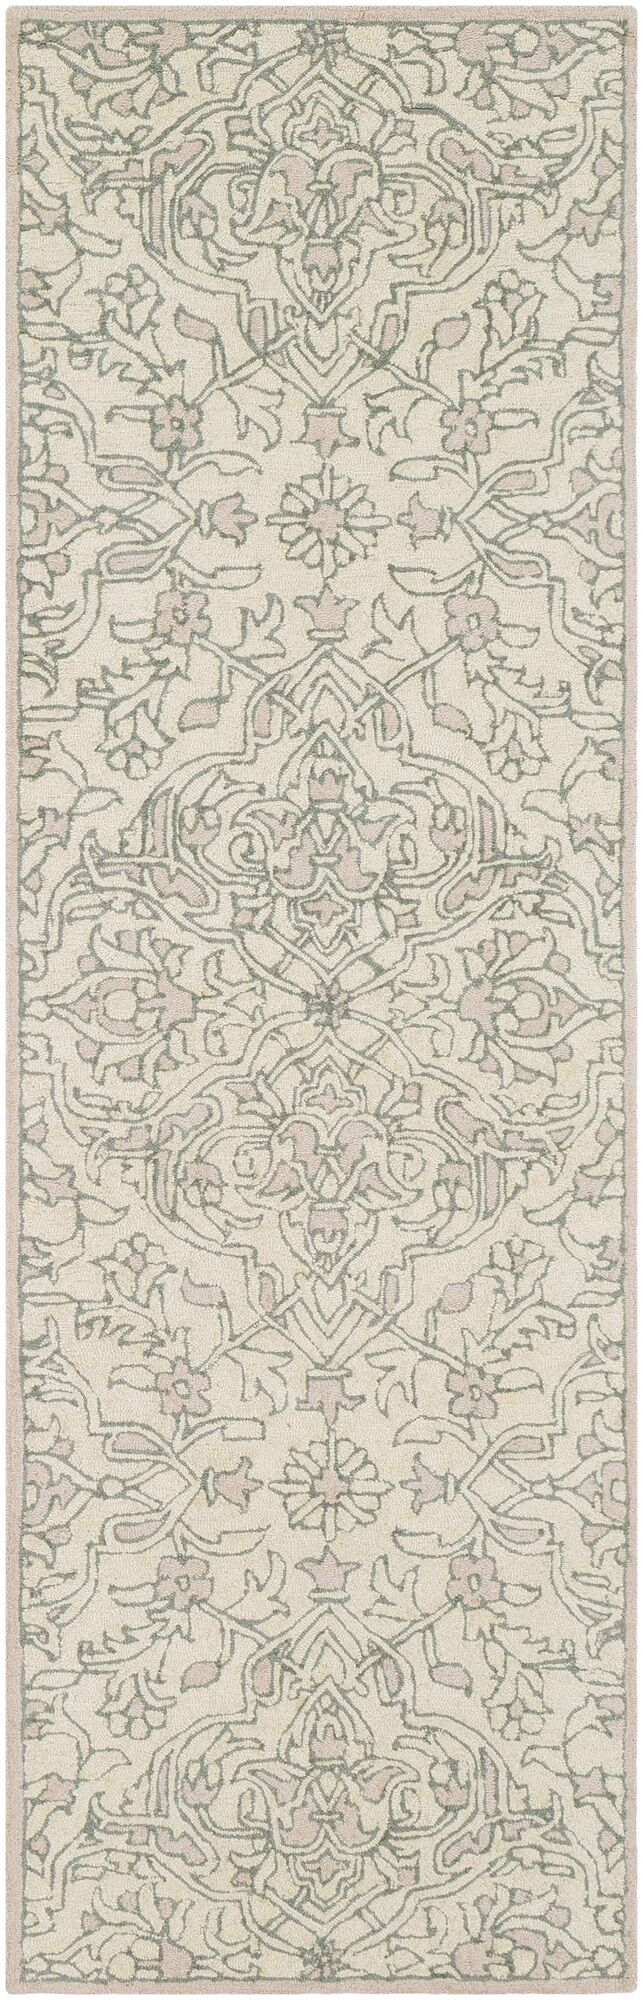 Puttney Hand Hooked Wool Teal/Taupe Area Rug